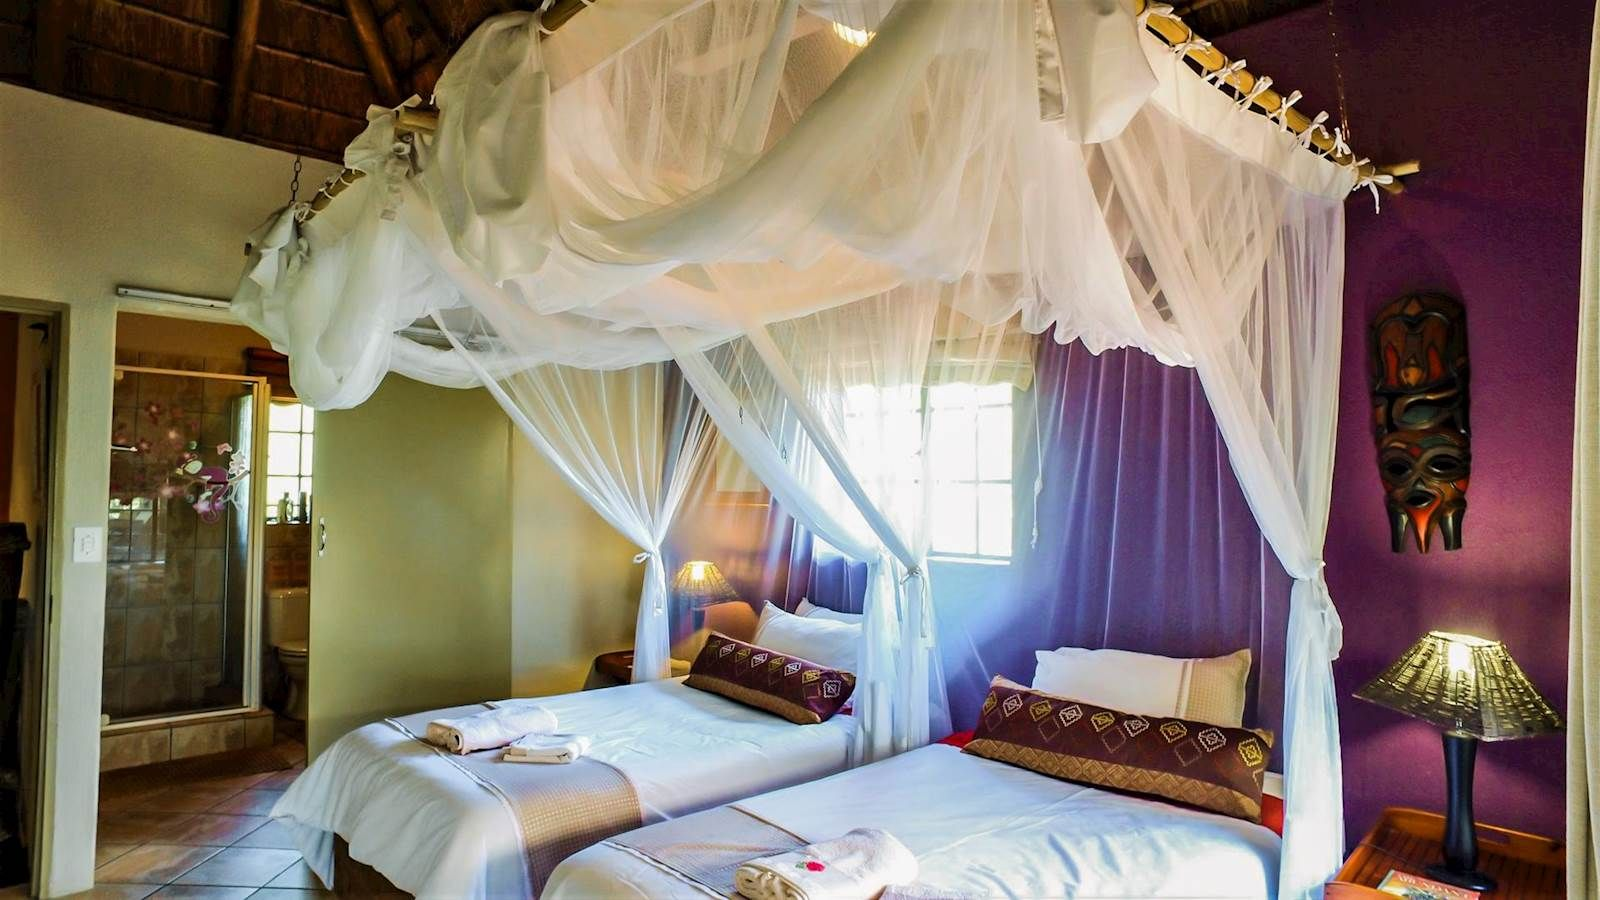 5 bedroom house interior  bedroom house in marloth park photo number   game lodge